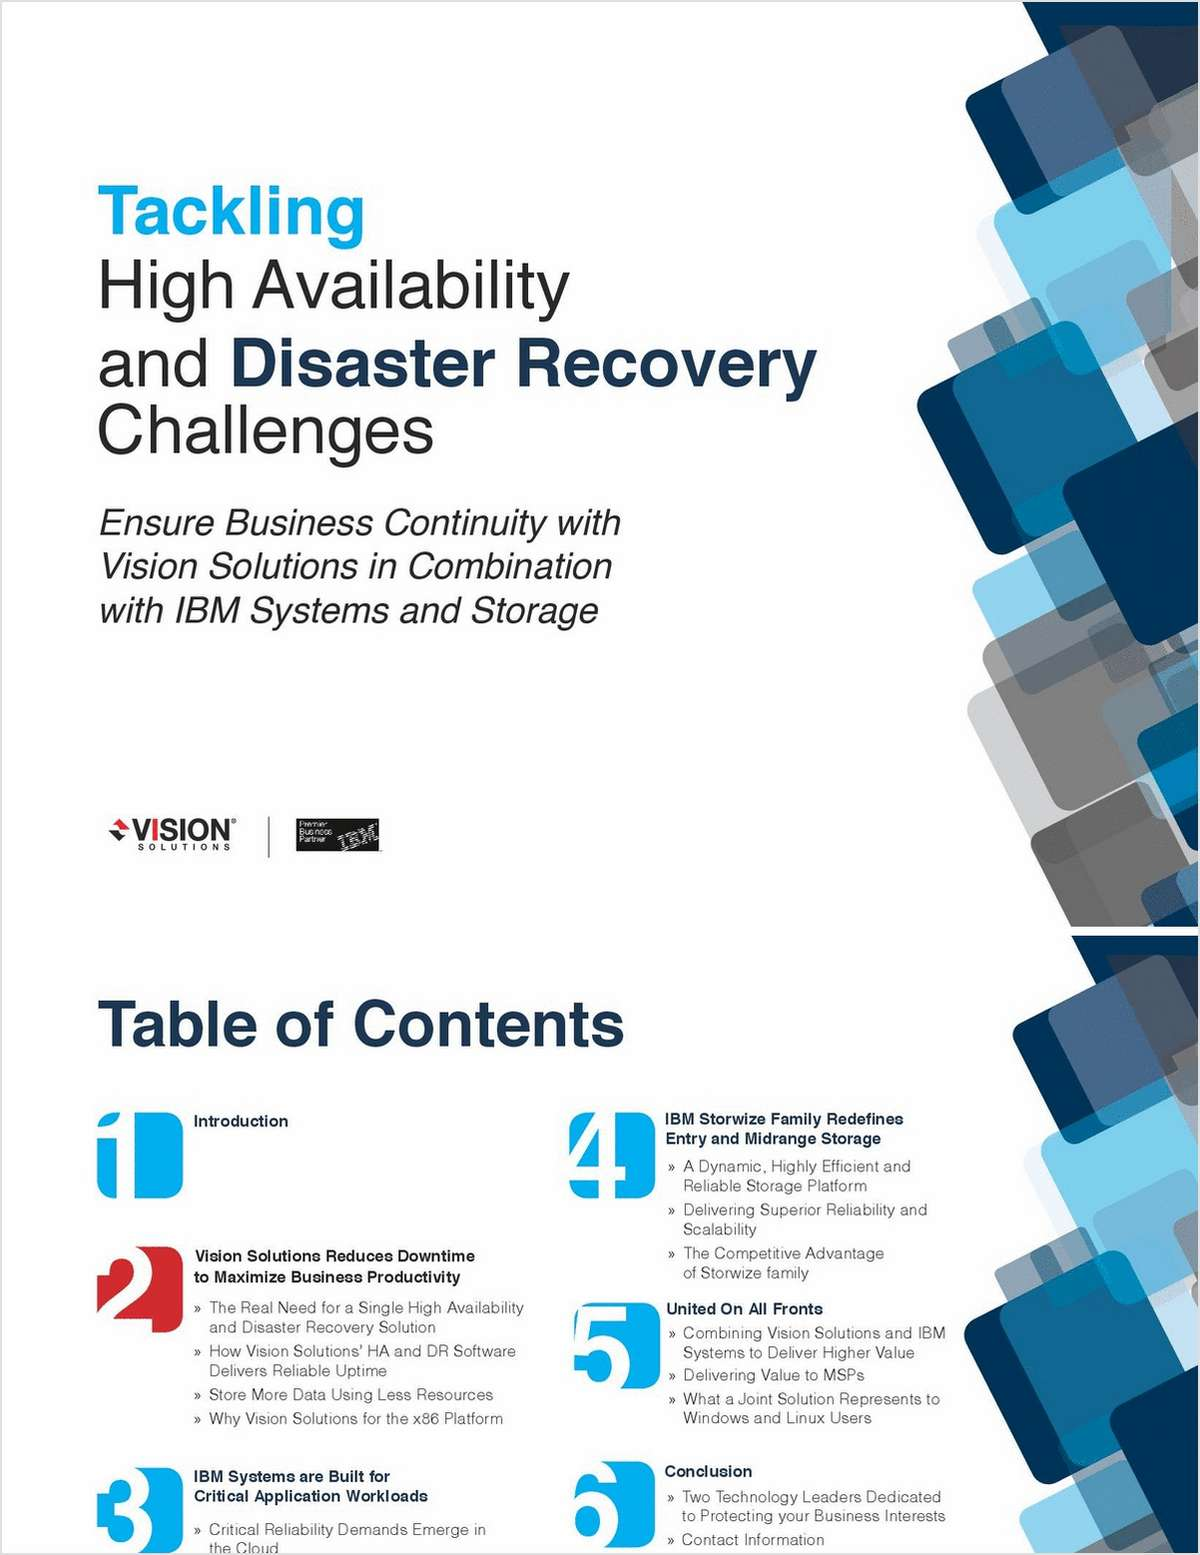 Ensure Business Continuity with Vision Solutions in Combination with IBM Systems and Storage